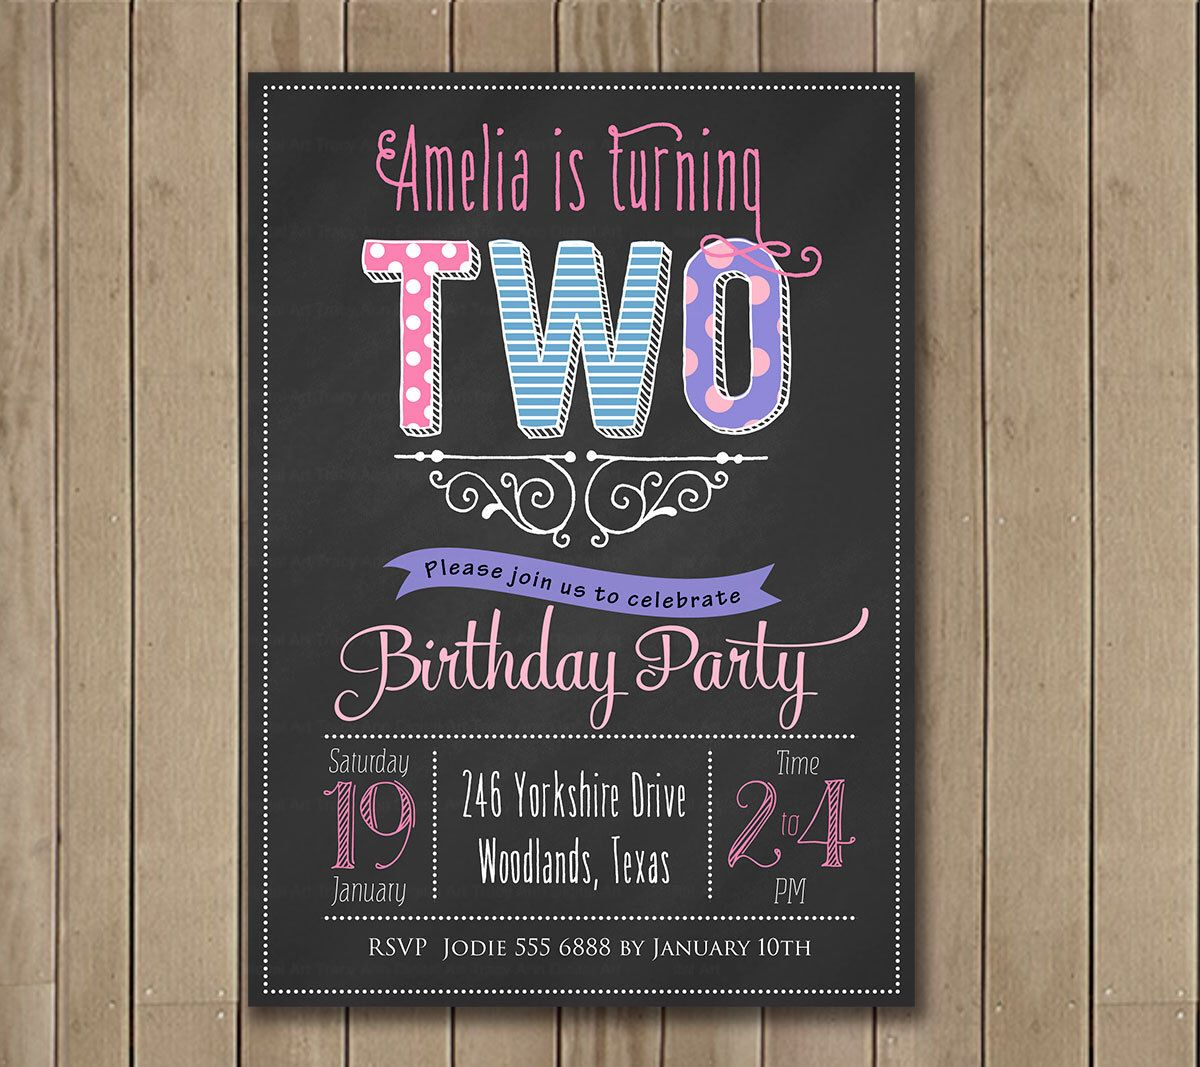 Chalkboard 2nd Birthday Invitation.  Little Girl Birthday Invitation. Printable. DIY. Purple and Pink. 1002a by TracyAnnPrintables on Etsy https://www.etsy.com/listing/194922883/chalkboard-2nd-birthday-invitation